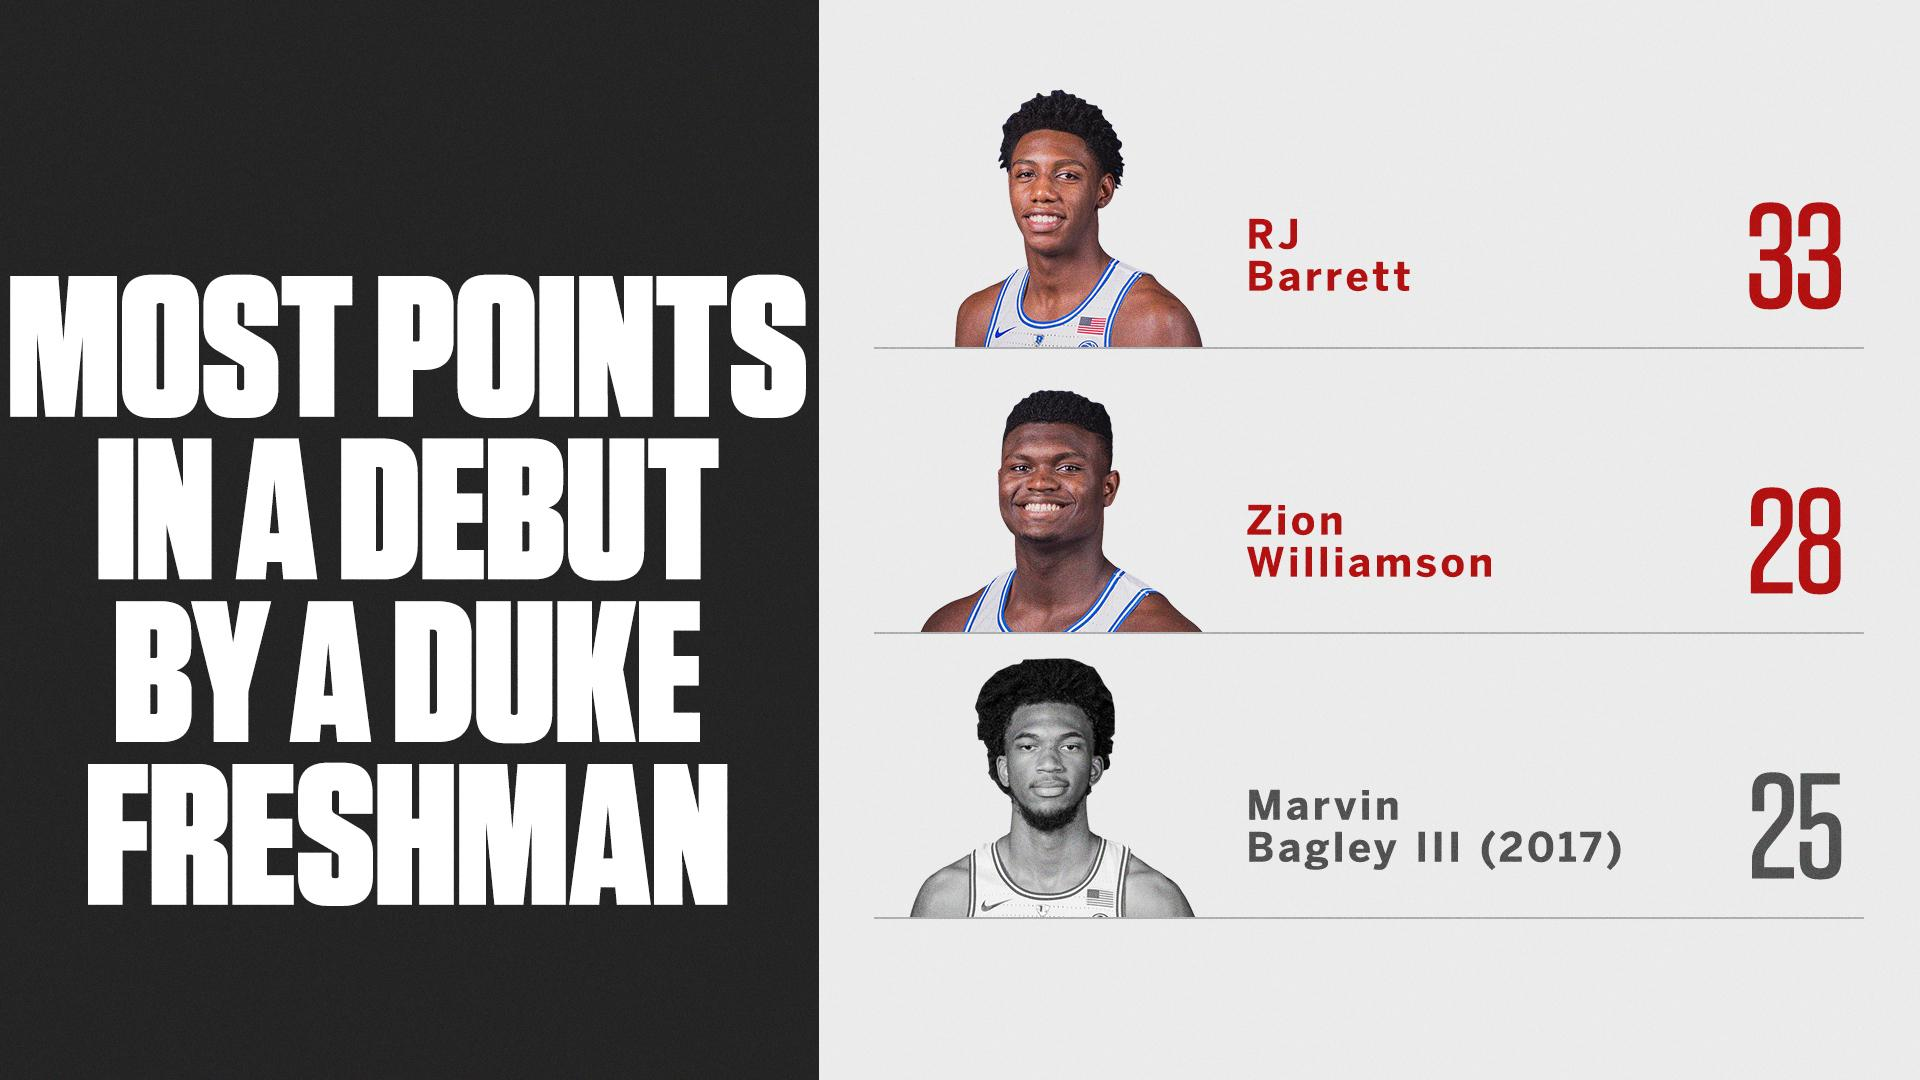 Both RJ Barrett and Zion Williamson broke a record in their Duke debuts �� https://t.co/hdjtwdlxhP